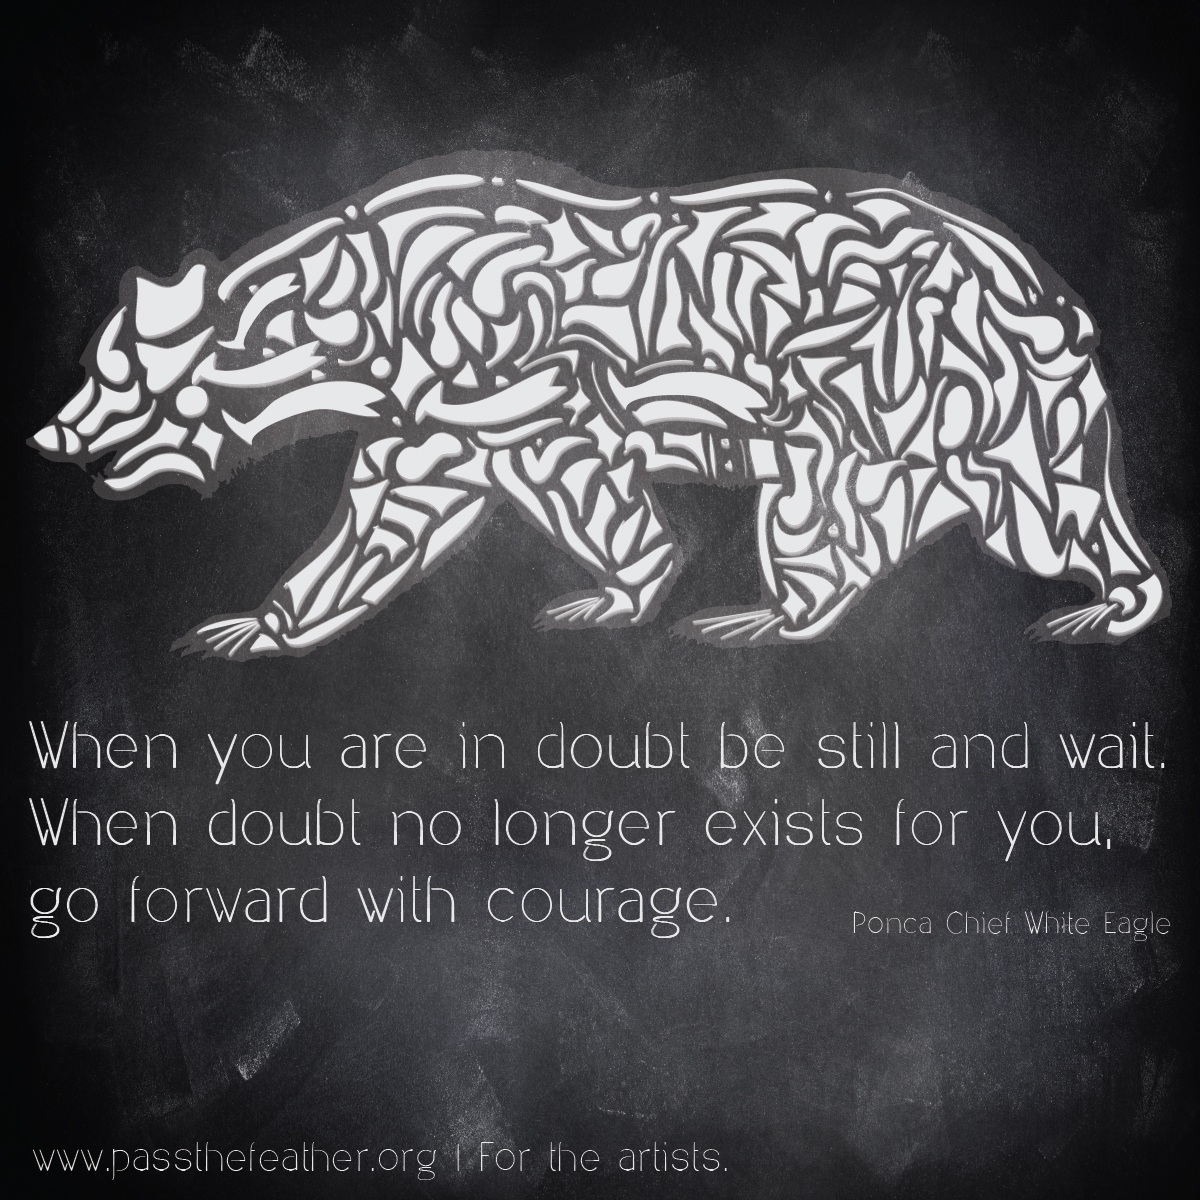 courage, Facebook posts, pass the feather